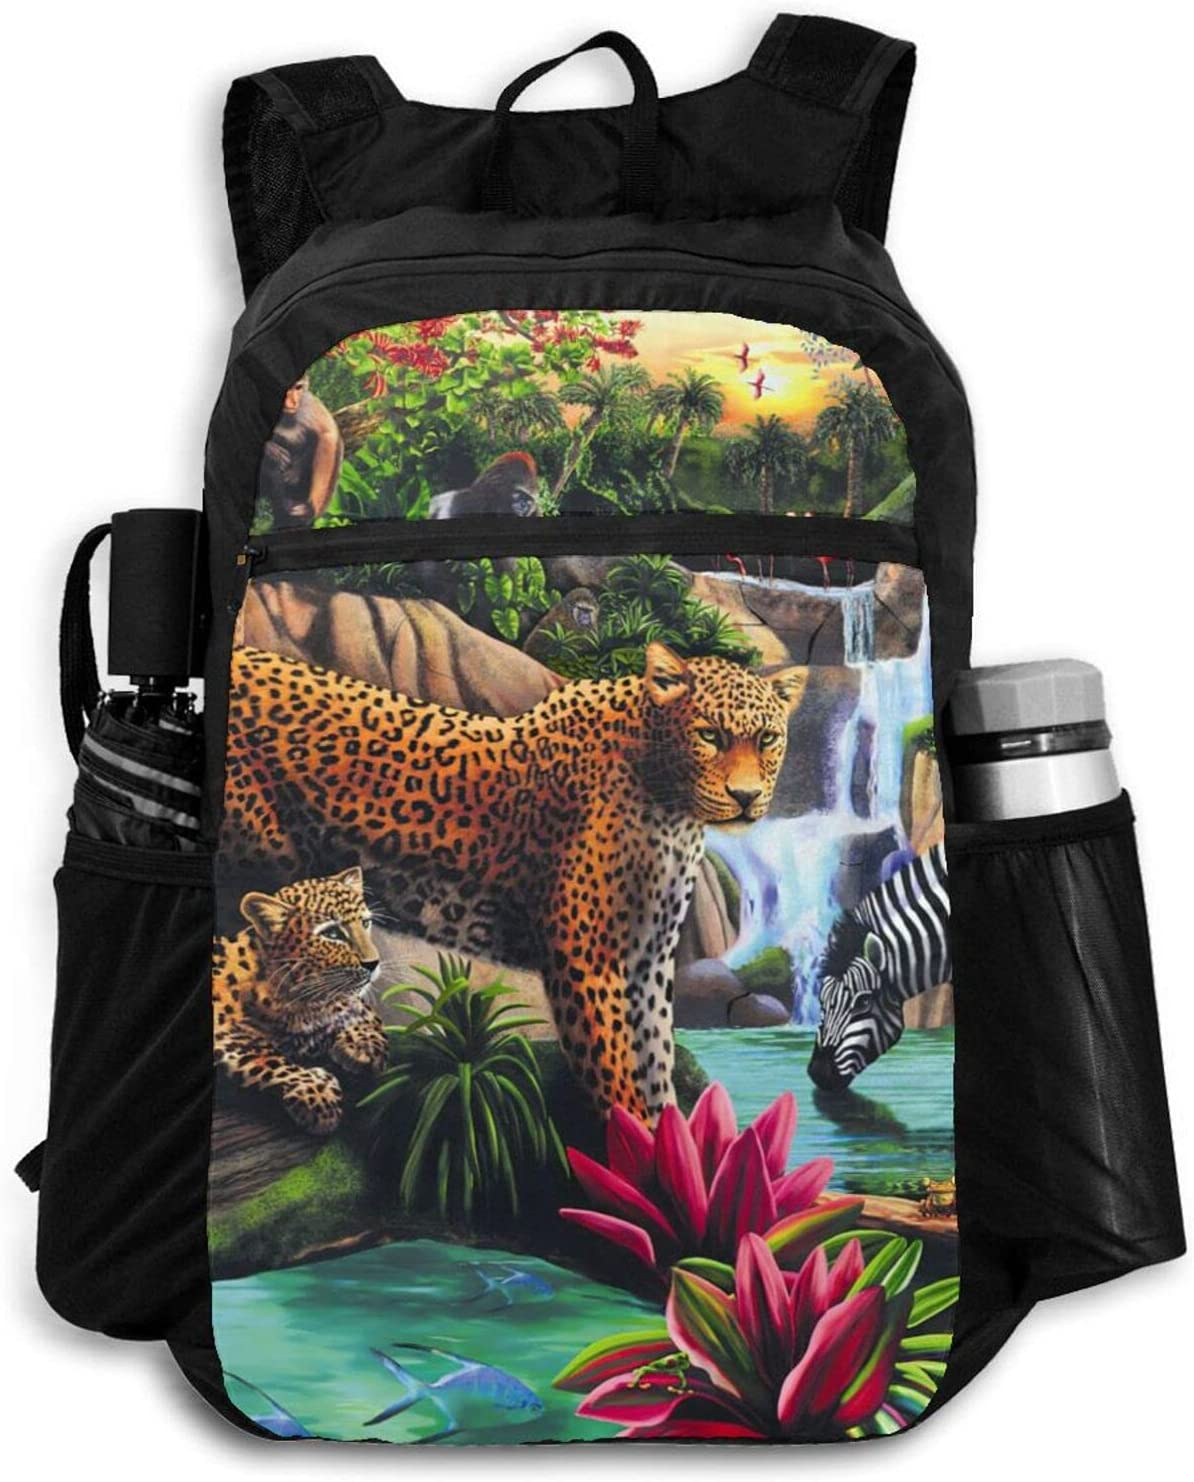 Zolama Cute Animals in Recommendation Jungle Men Packa Backpacks for Women Ranking TOP3